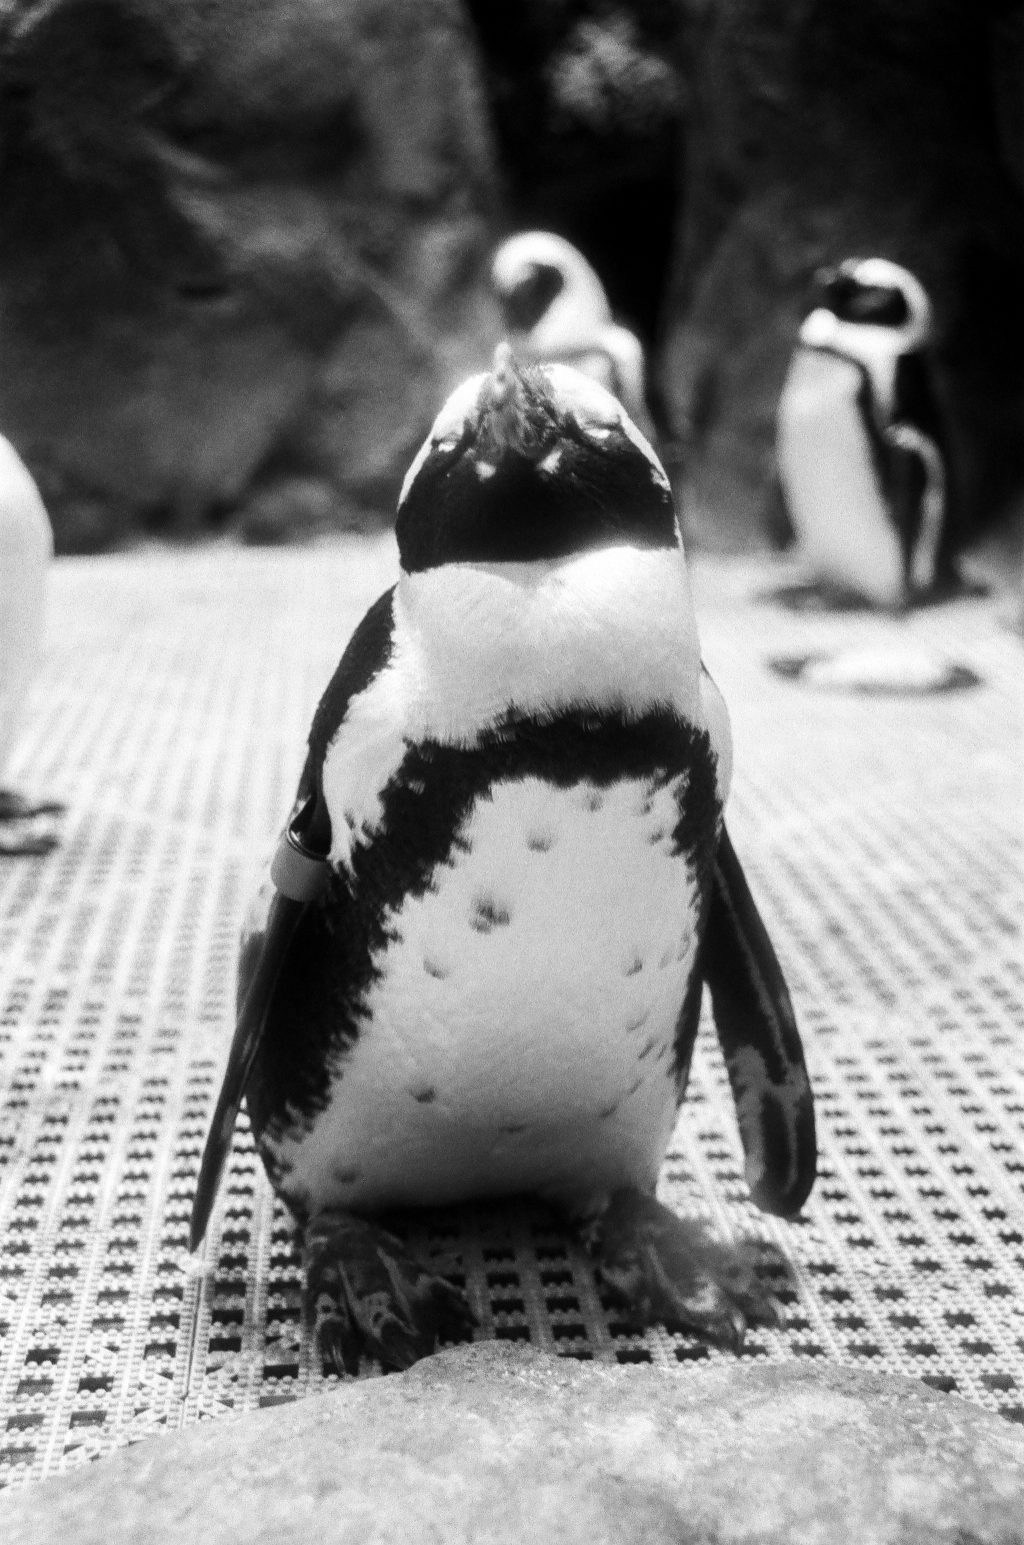 Cheeky Boi- African Penguin at the Greensboro Science Center